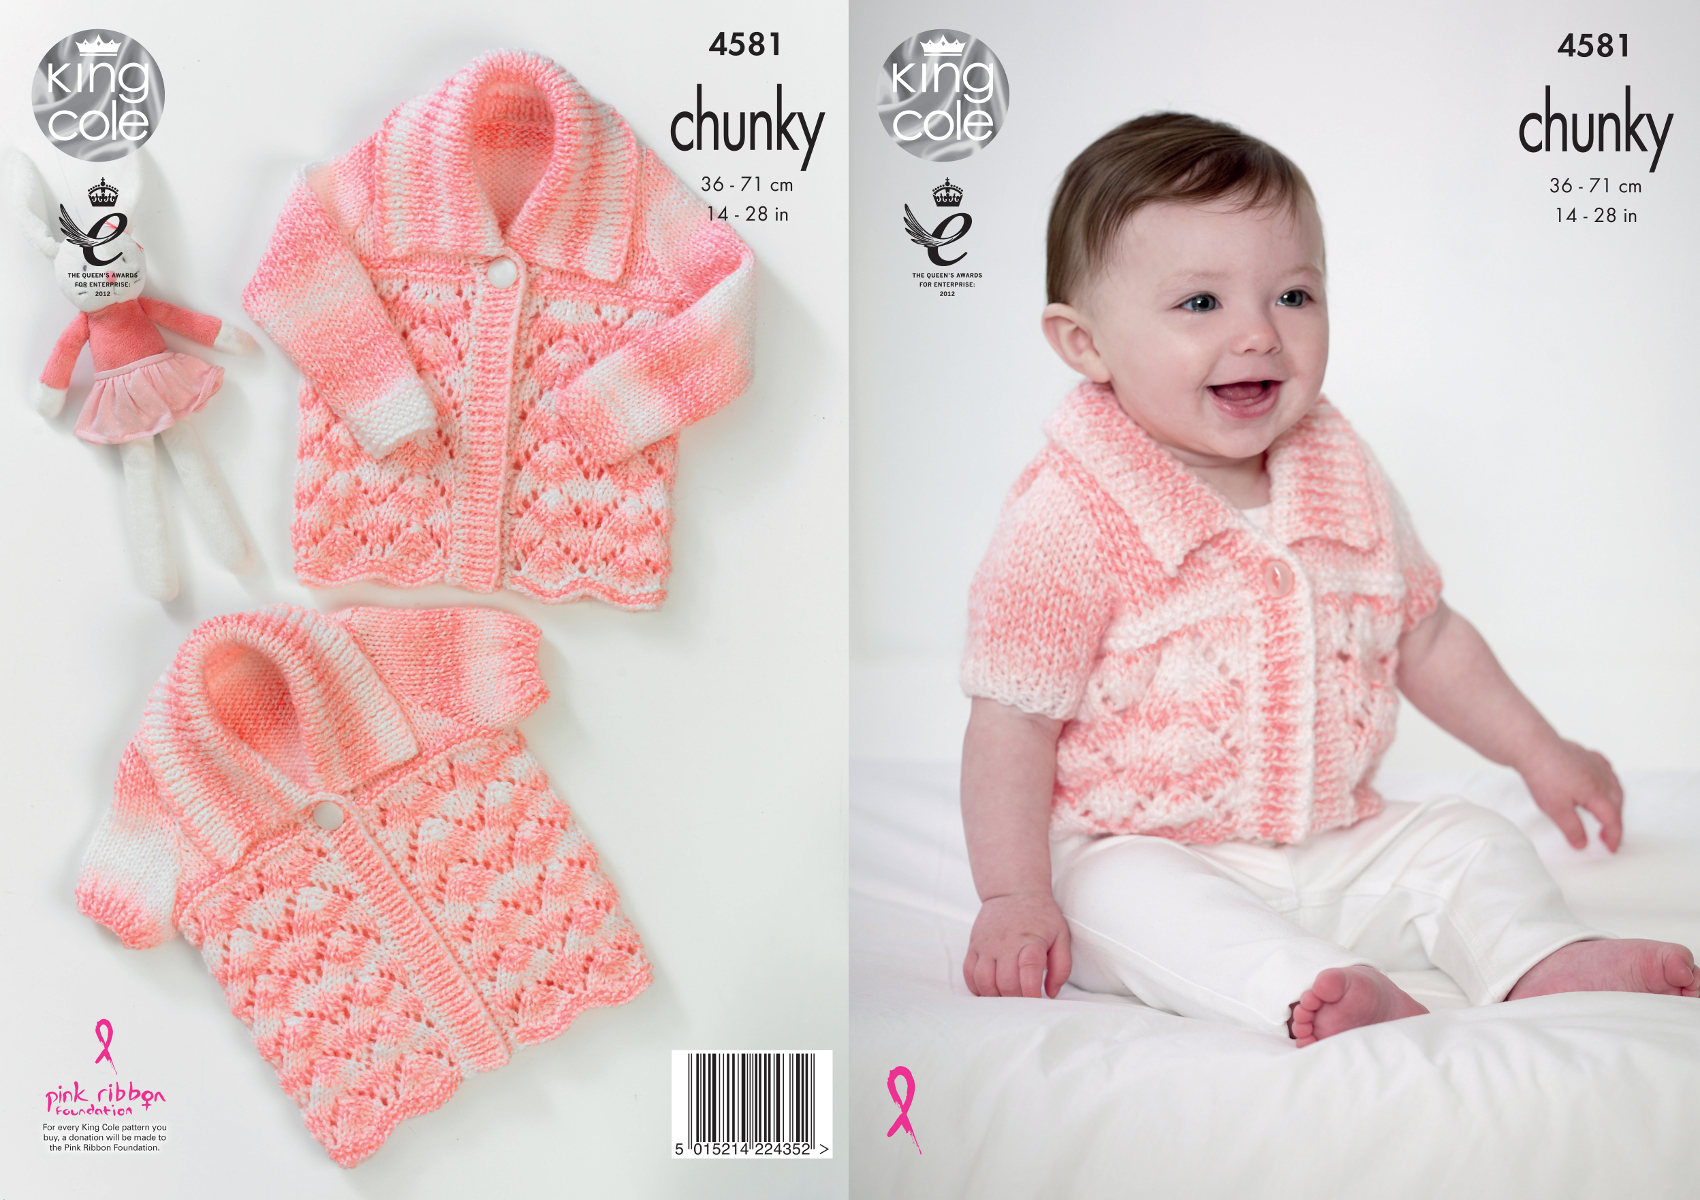 Baby short or long sleeve lace cardigans knitting pattern king baby short or long sleeve lace cardigans knitting pattern king cole chunky 4581 bankloansurffo Image collections